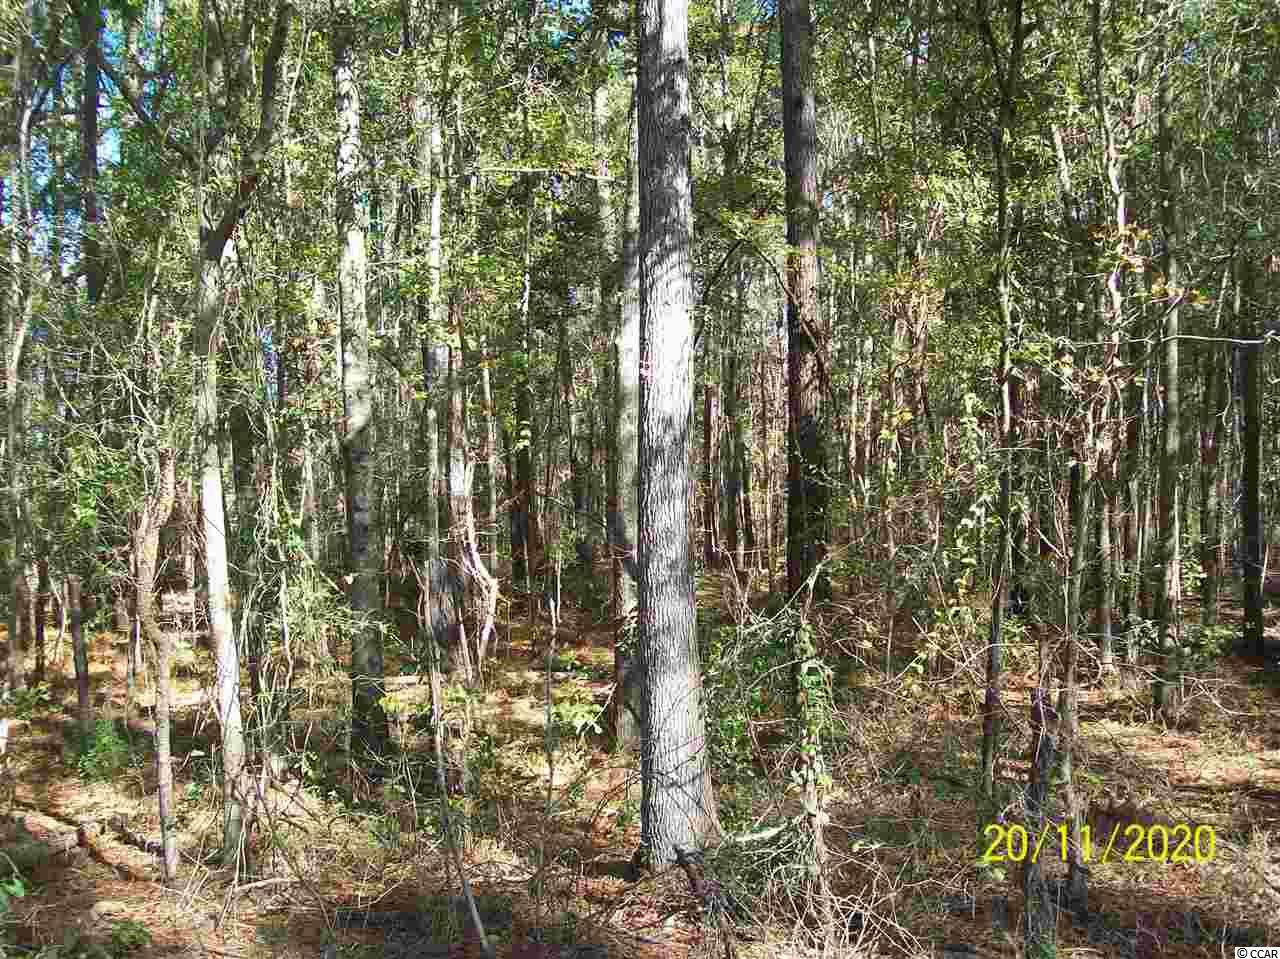 BEAUTIFUL LOT IN THE SANTEE AREA OF GEORGETOWN COUNTY, HAS BOTH PUBLIC WATER/SEWER, BUY ONE OR BOTH LOTS NEXT TO EACH OTHER TO MAKE 1.12 ACRES, GREAT PRICE!!!!!